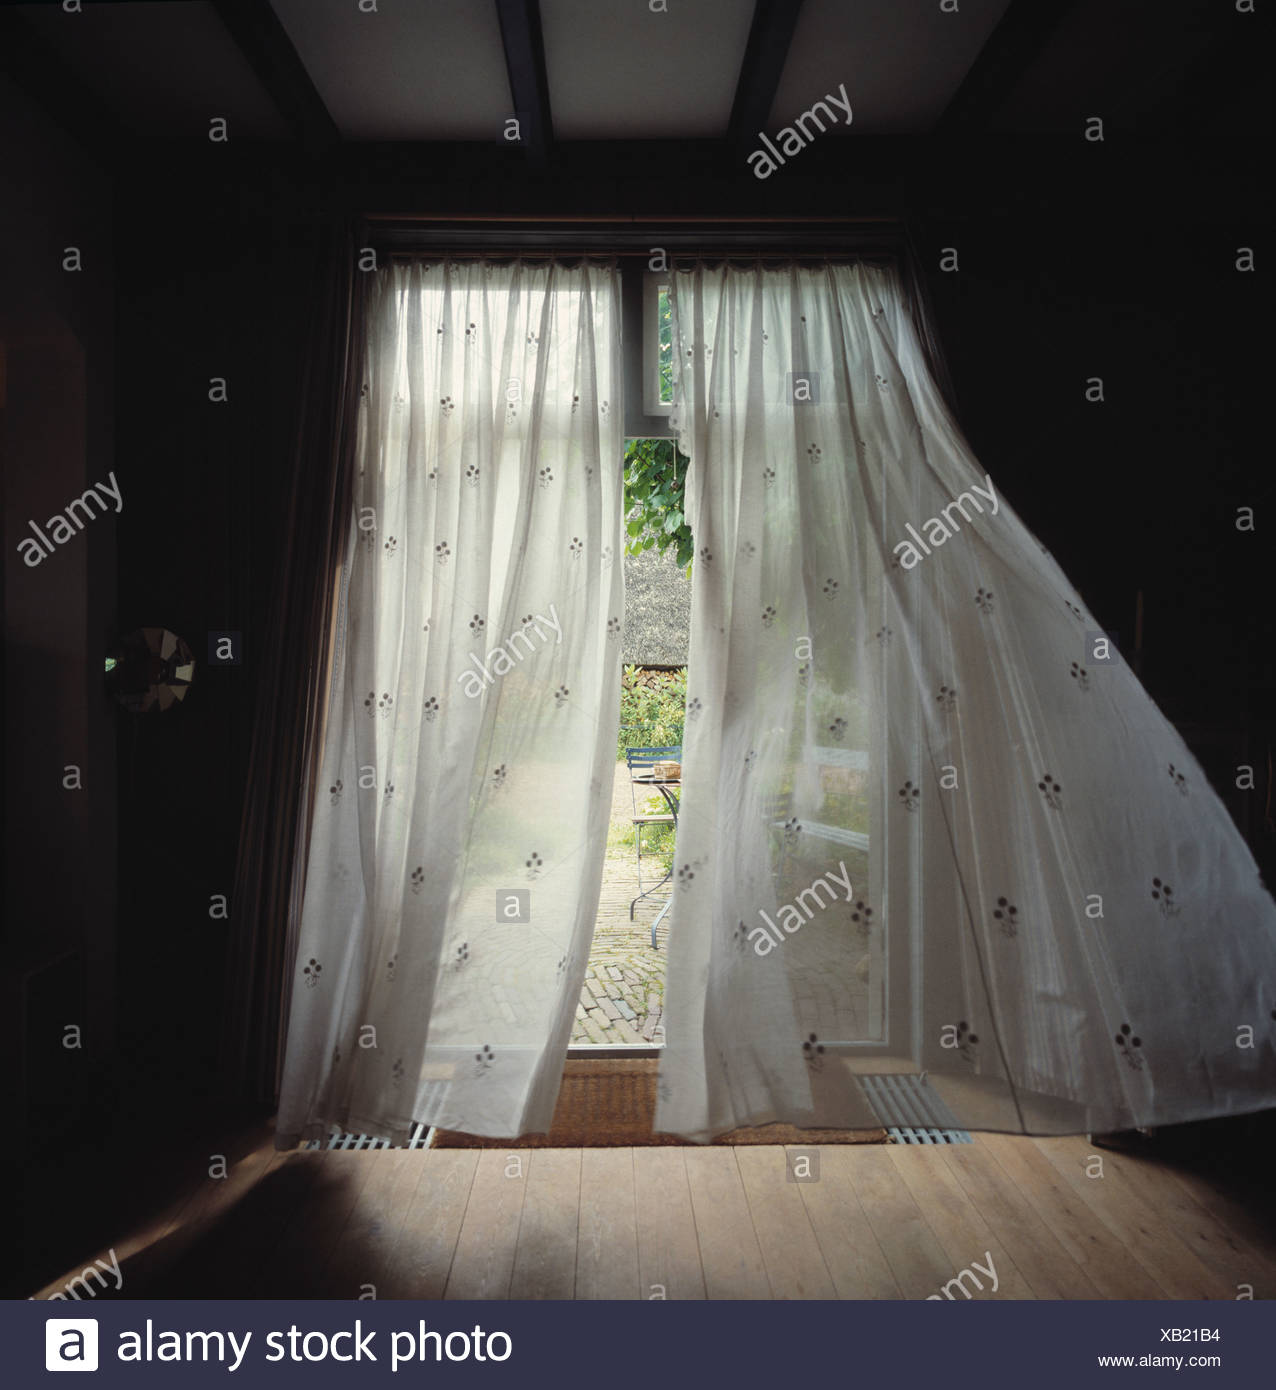 Window Curtains Blowing Stock Photos  for Window With Curtains Blowing  61obs